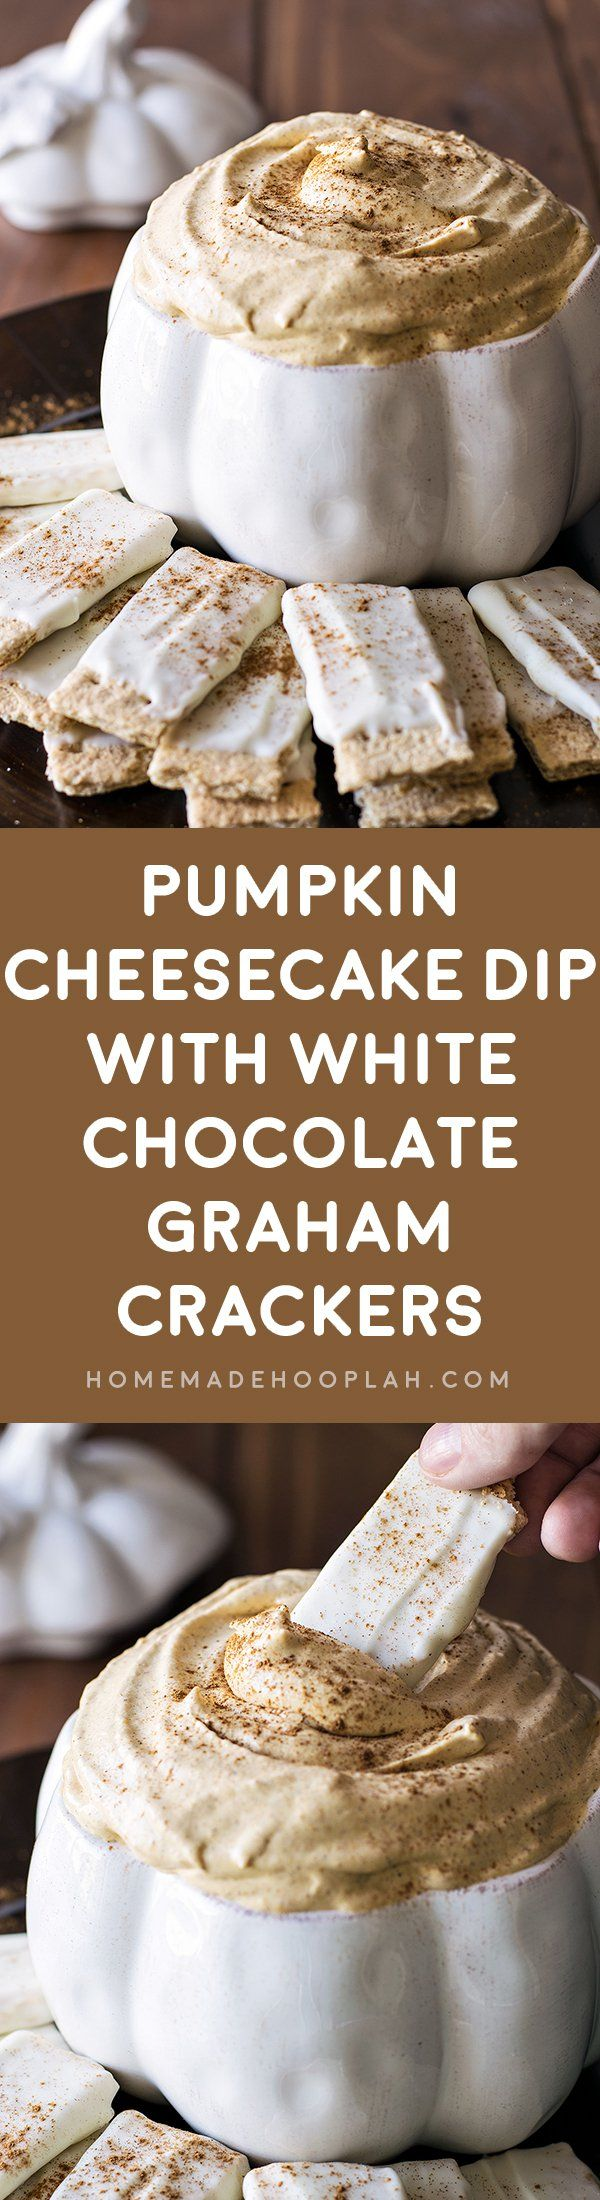 Pumpkin Cheesecake Dip with White Chocolate Graham Crackers